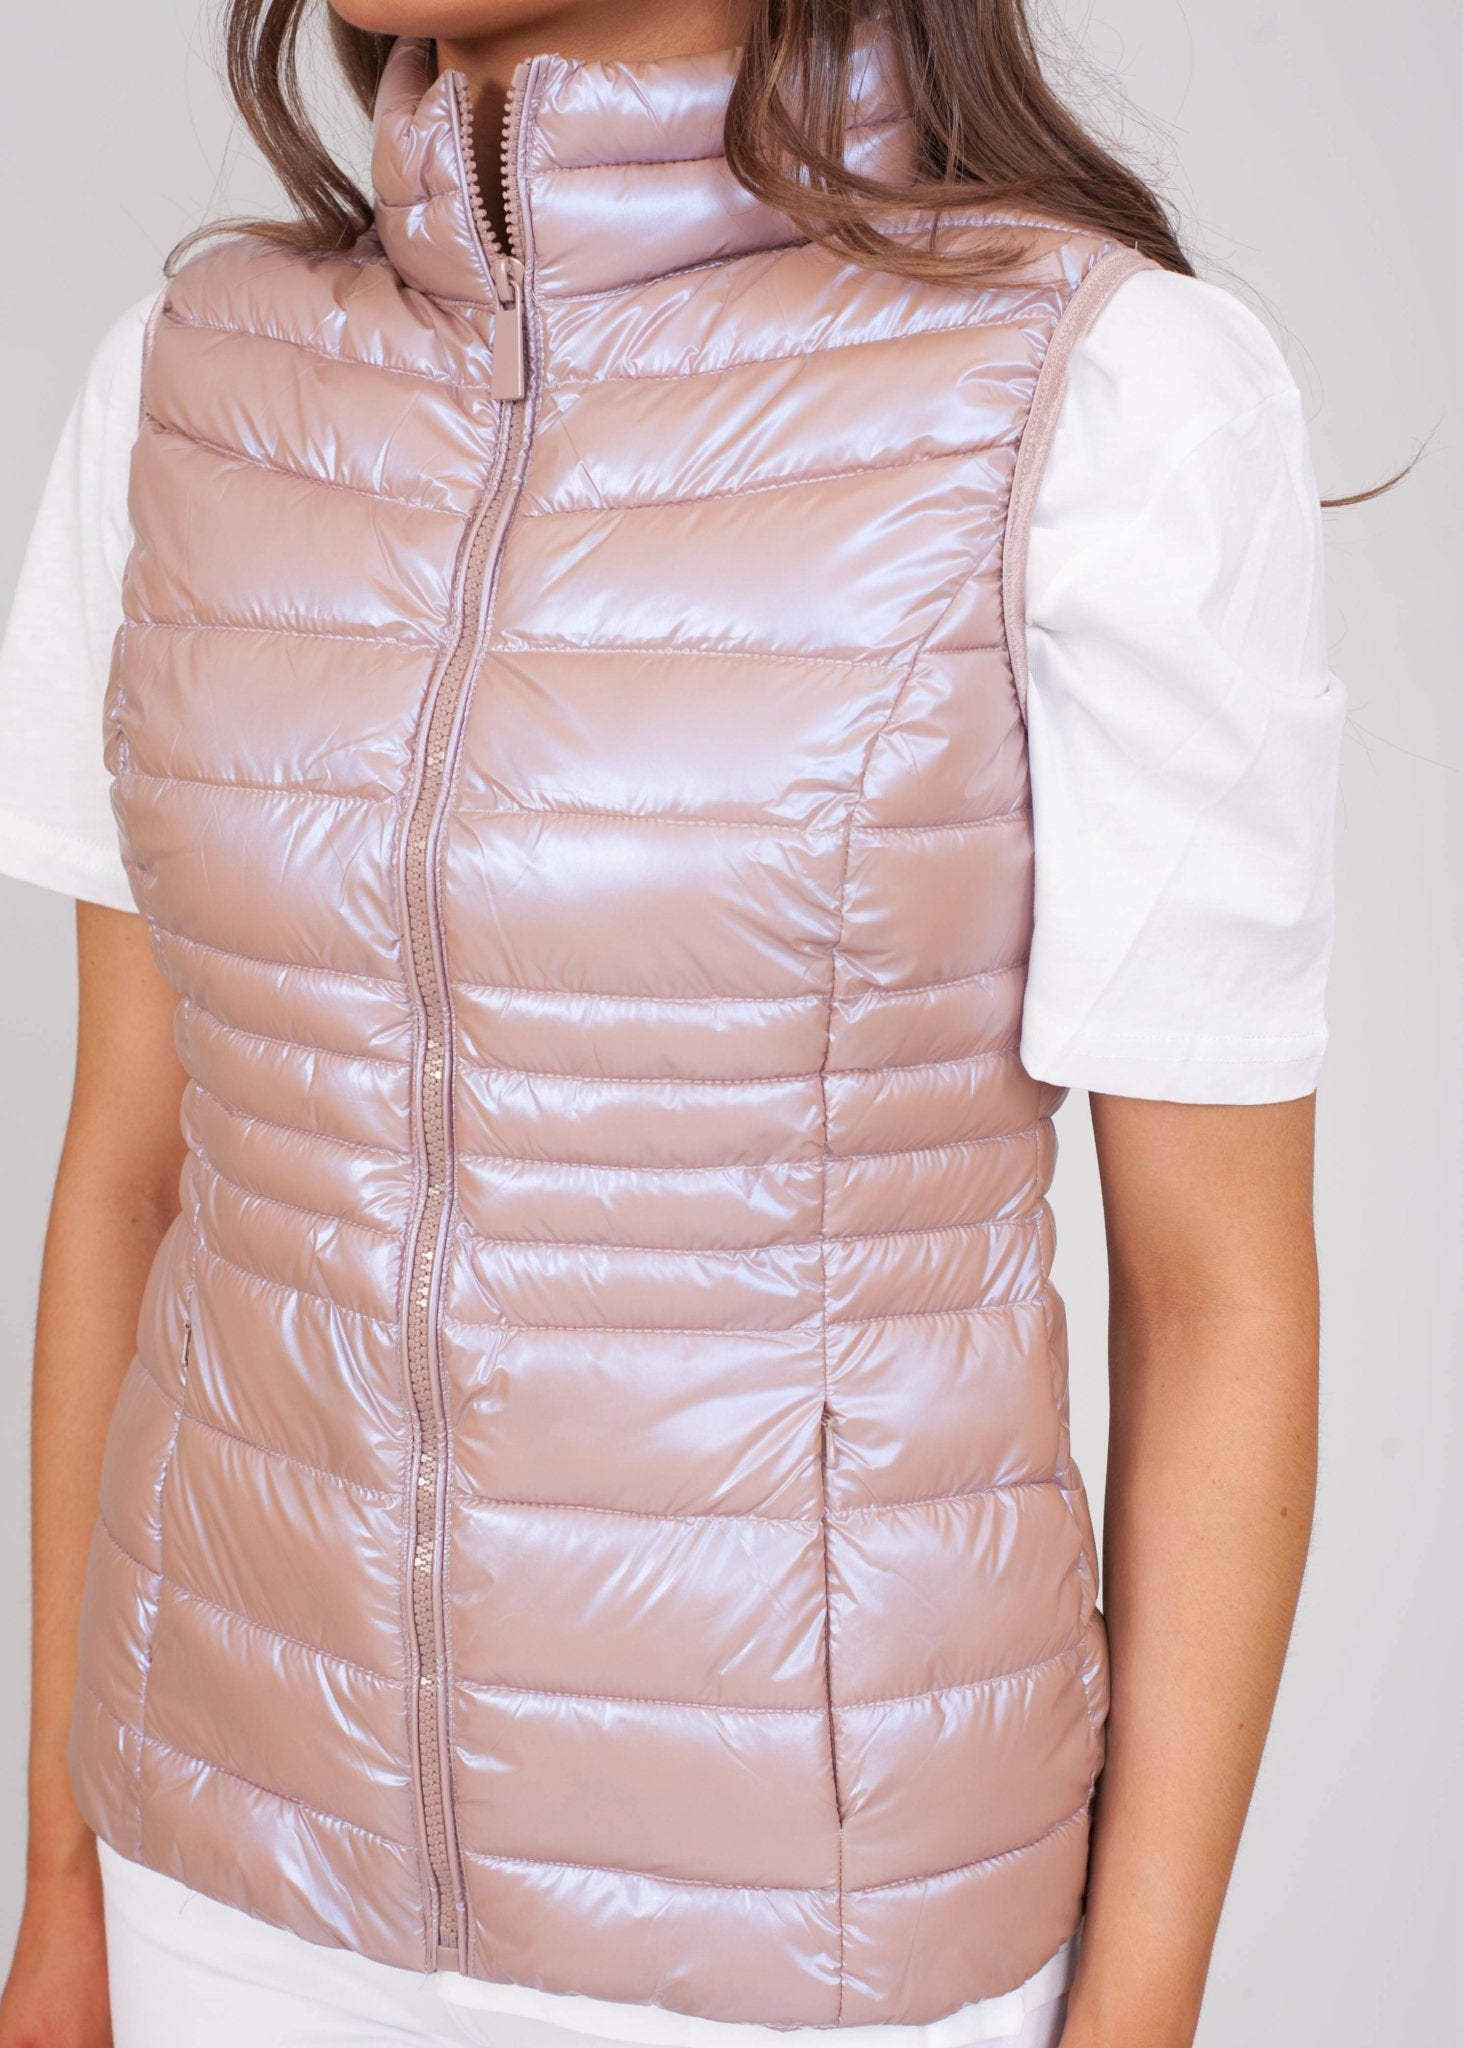 Priya Metallic Shimmer Gilet - The Walk in Wardrobe